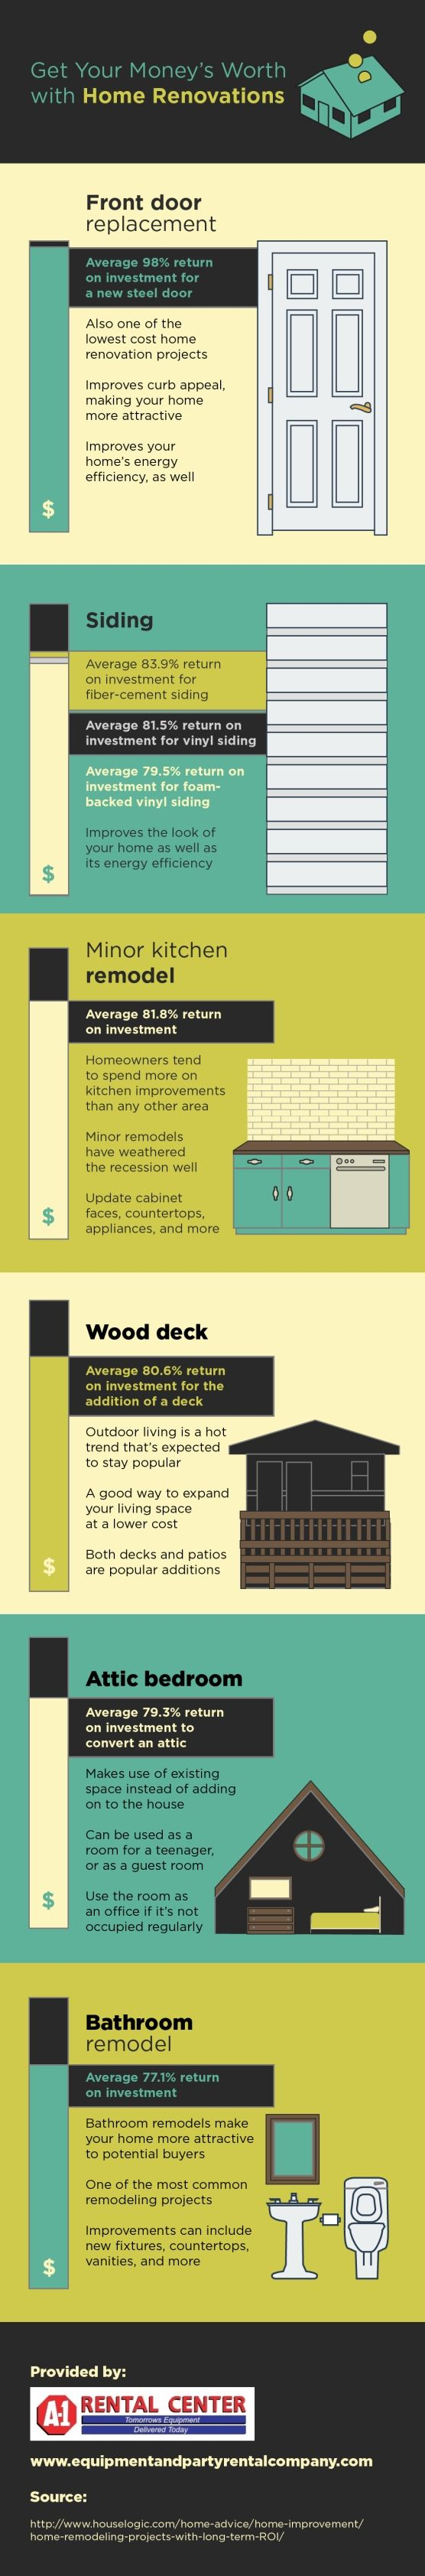 Remodel Bathroom Return On Investment 491 best home improvement infographics images on pinterest